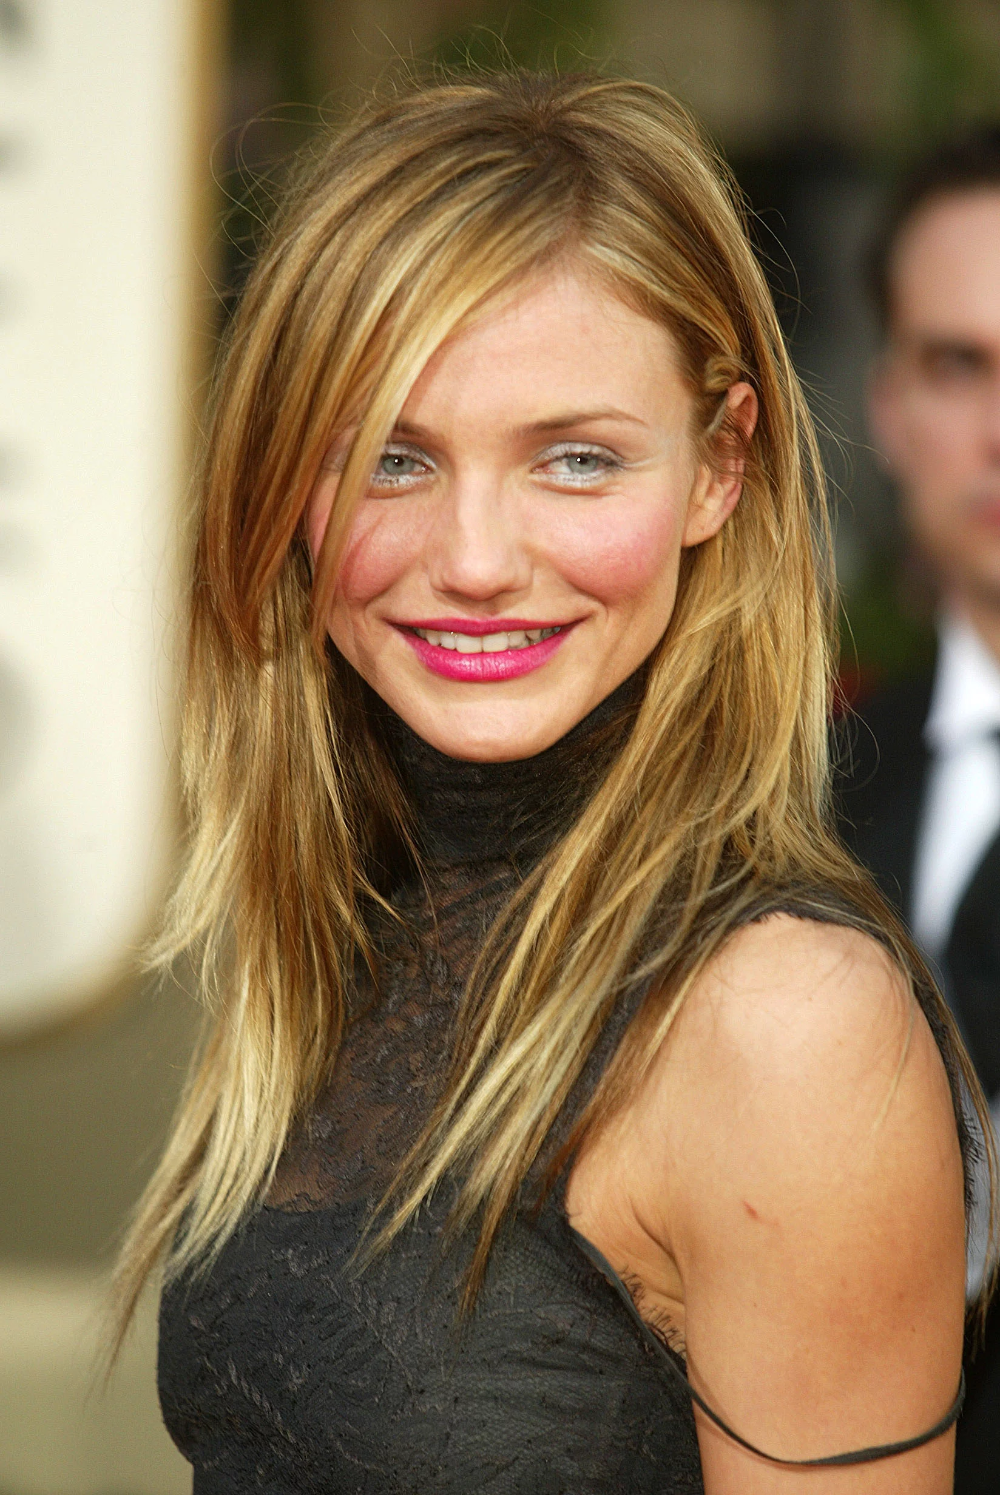 Cameron Diaz Is The Sweetest Thing And Definitely The Sexiest In 2020 Cameron Diaz Hair Cameron Diaz Long Hair Styles